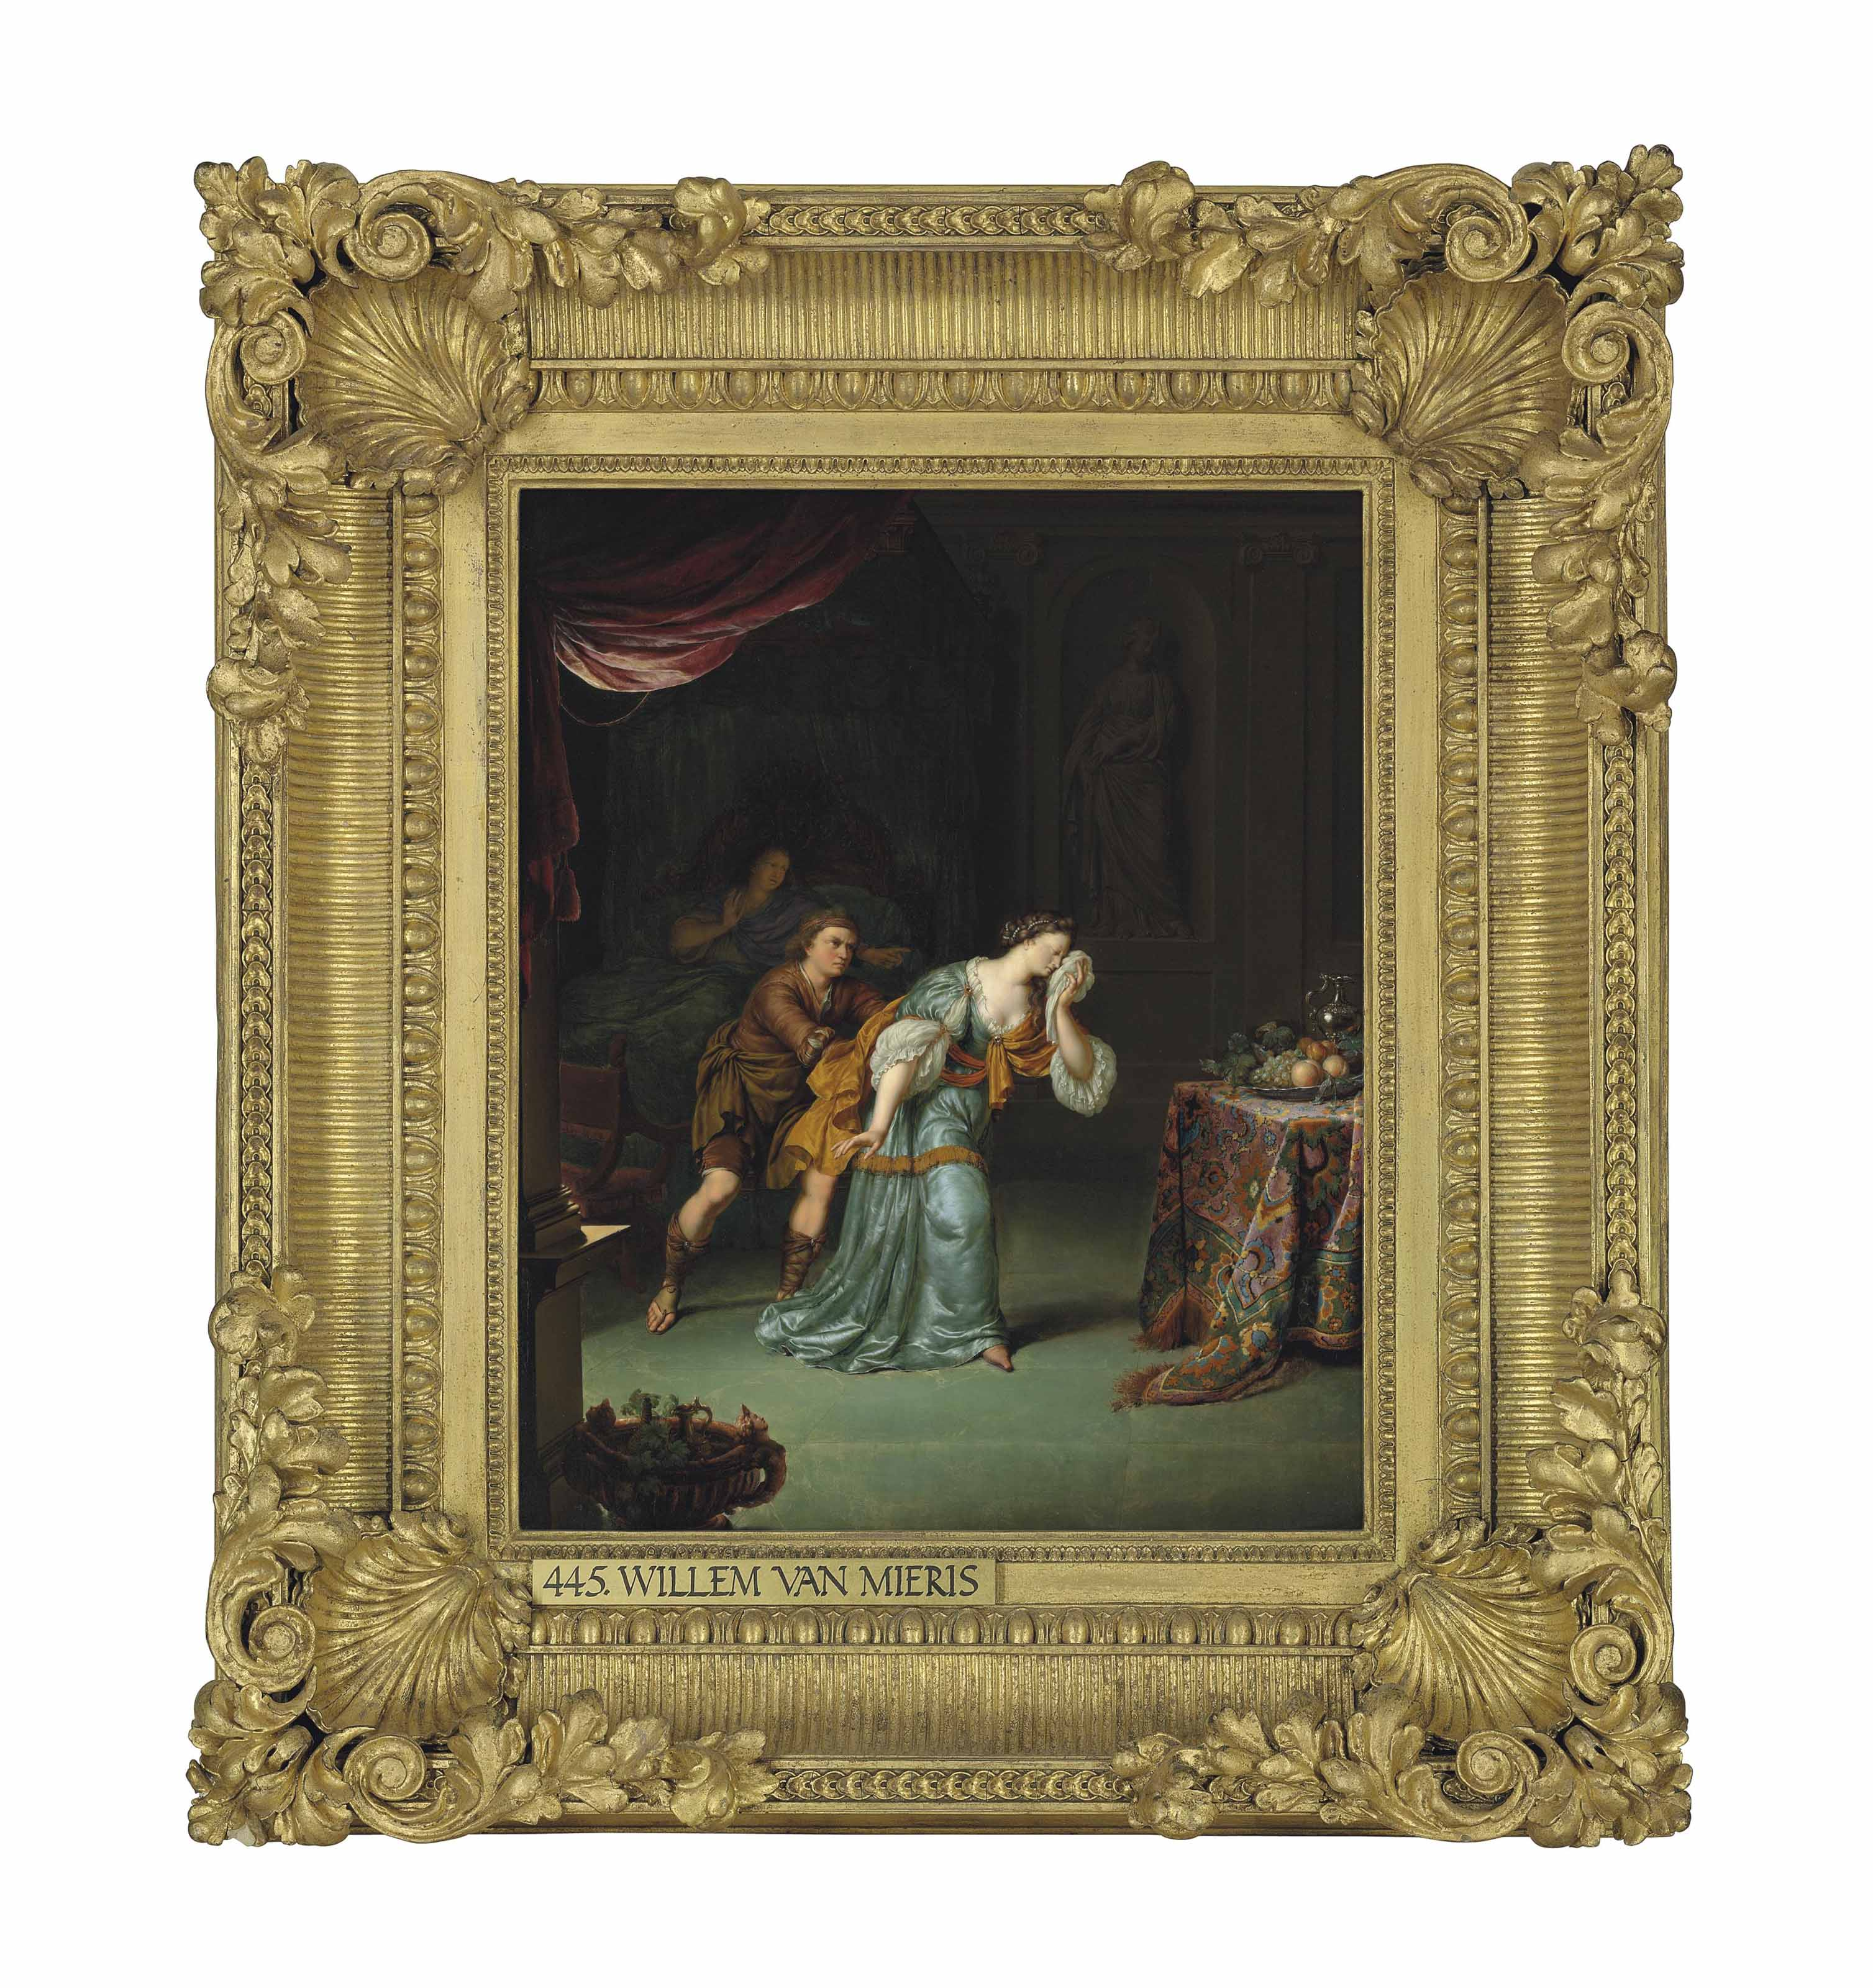 An interior with a man consoling a distressed lady, beside an invalid in bed